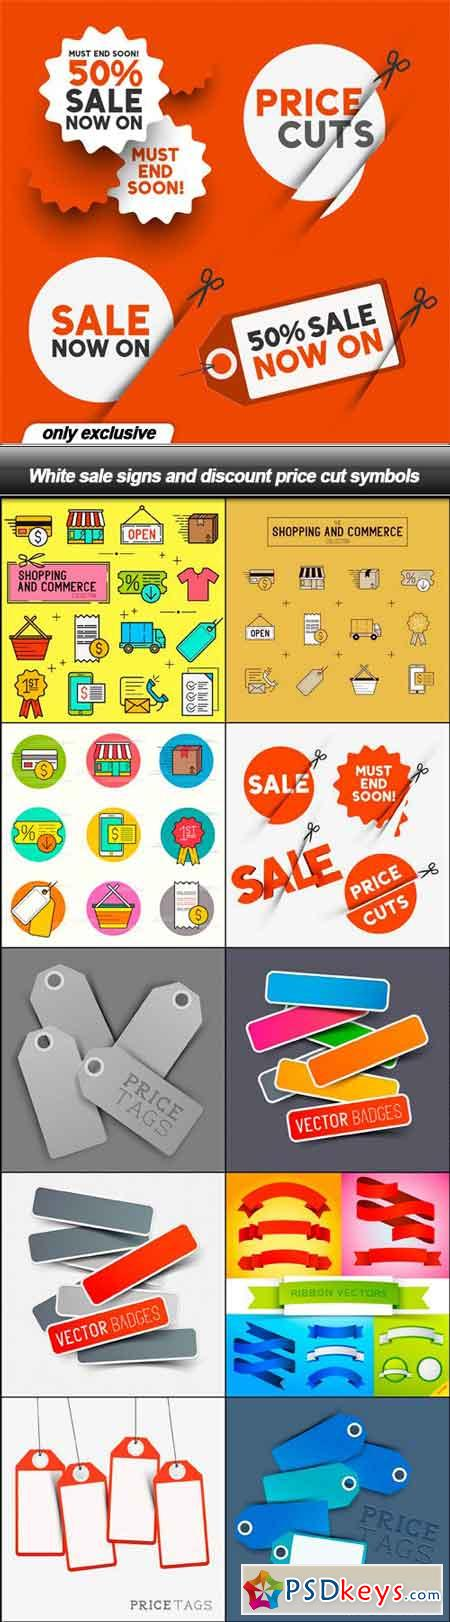 White sale signs and discount price cut symbols - 11 EPS